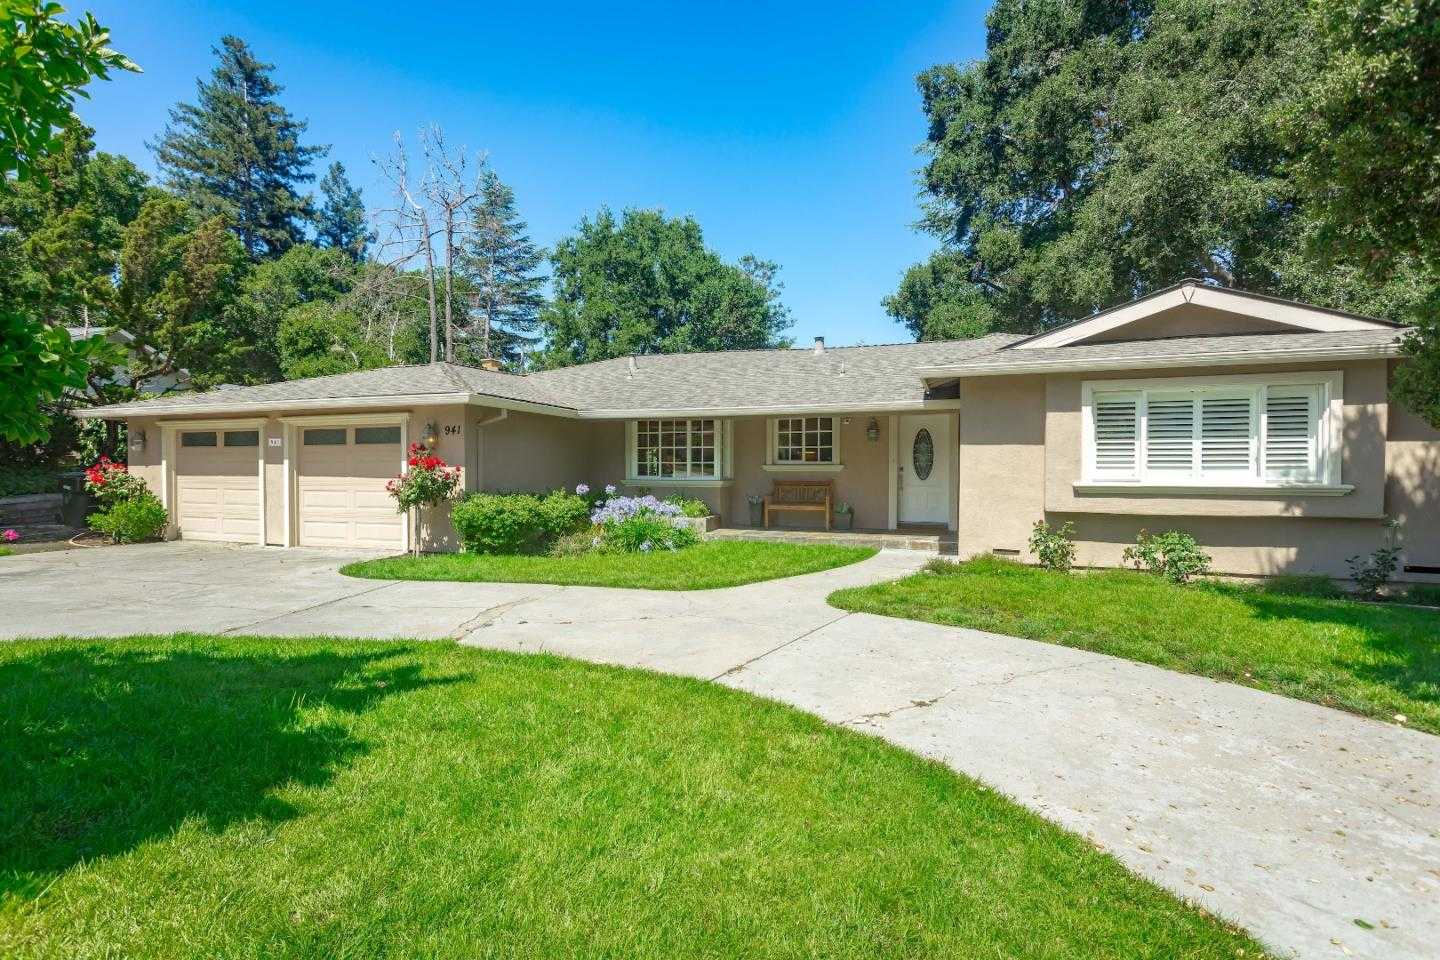 $2,630,000 - 4Br/3Ba -  for Sale in Los Altos